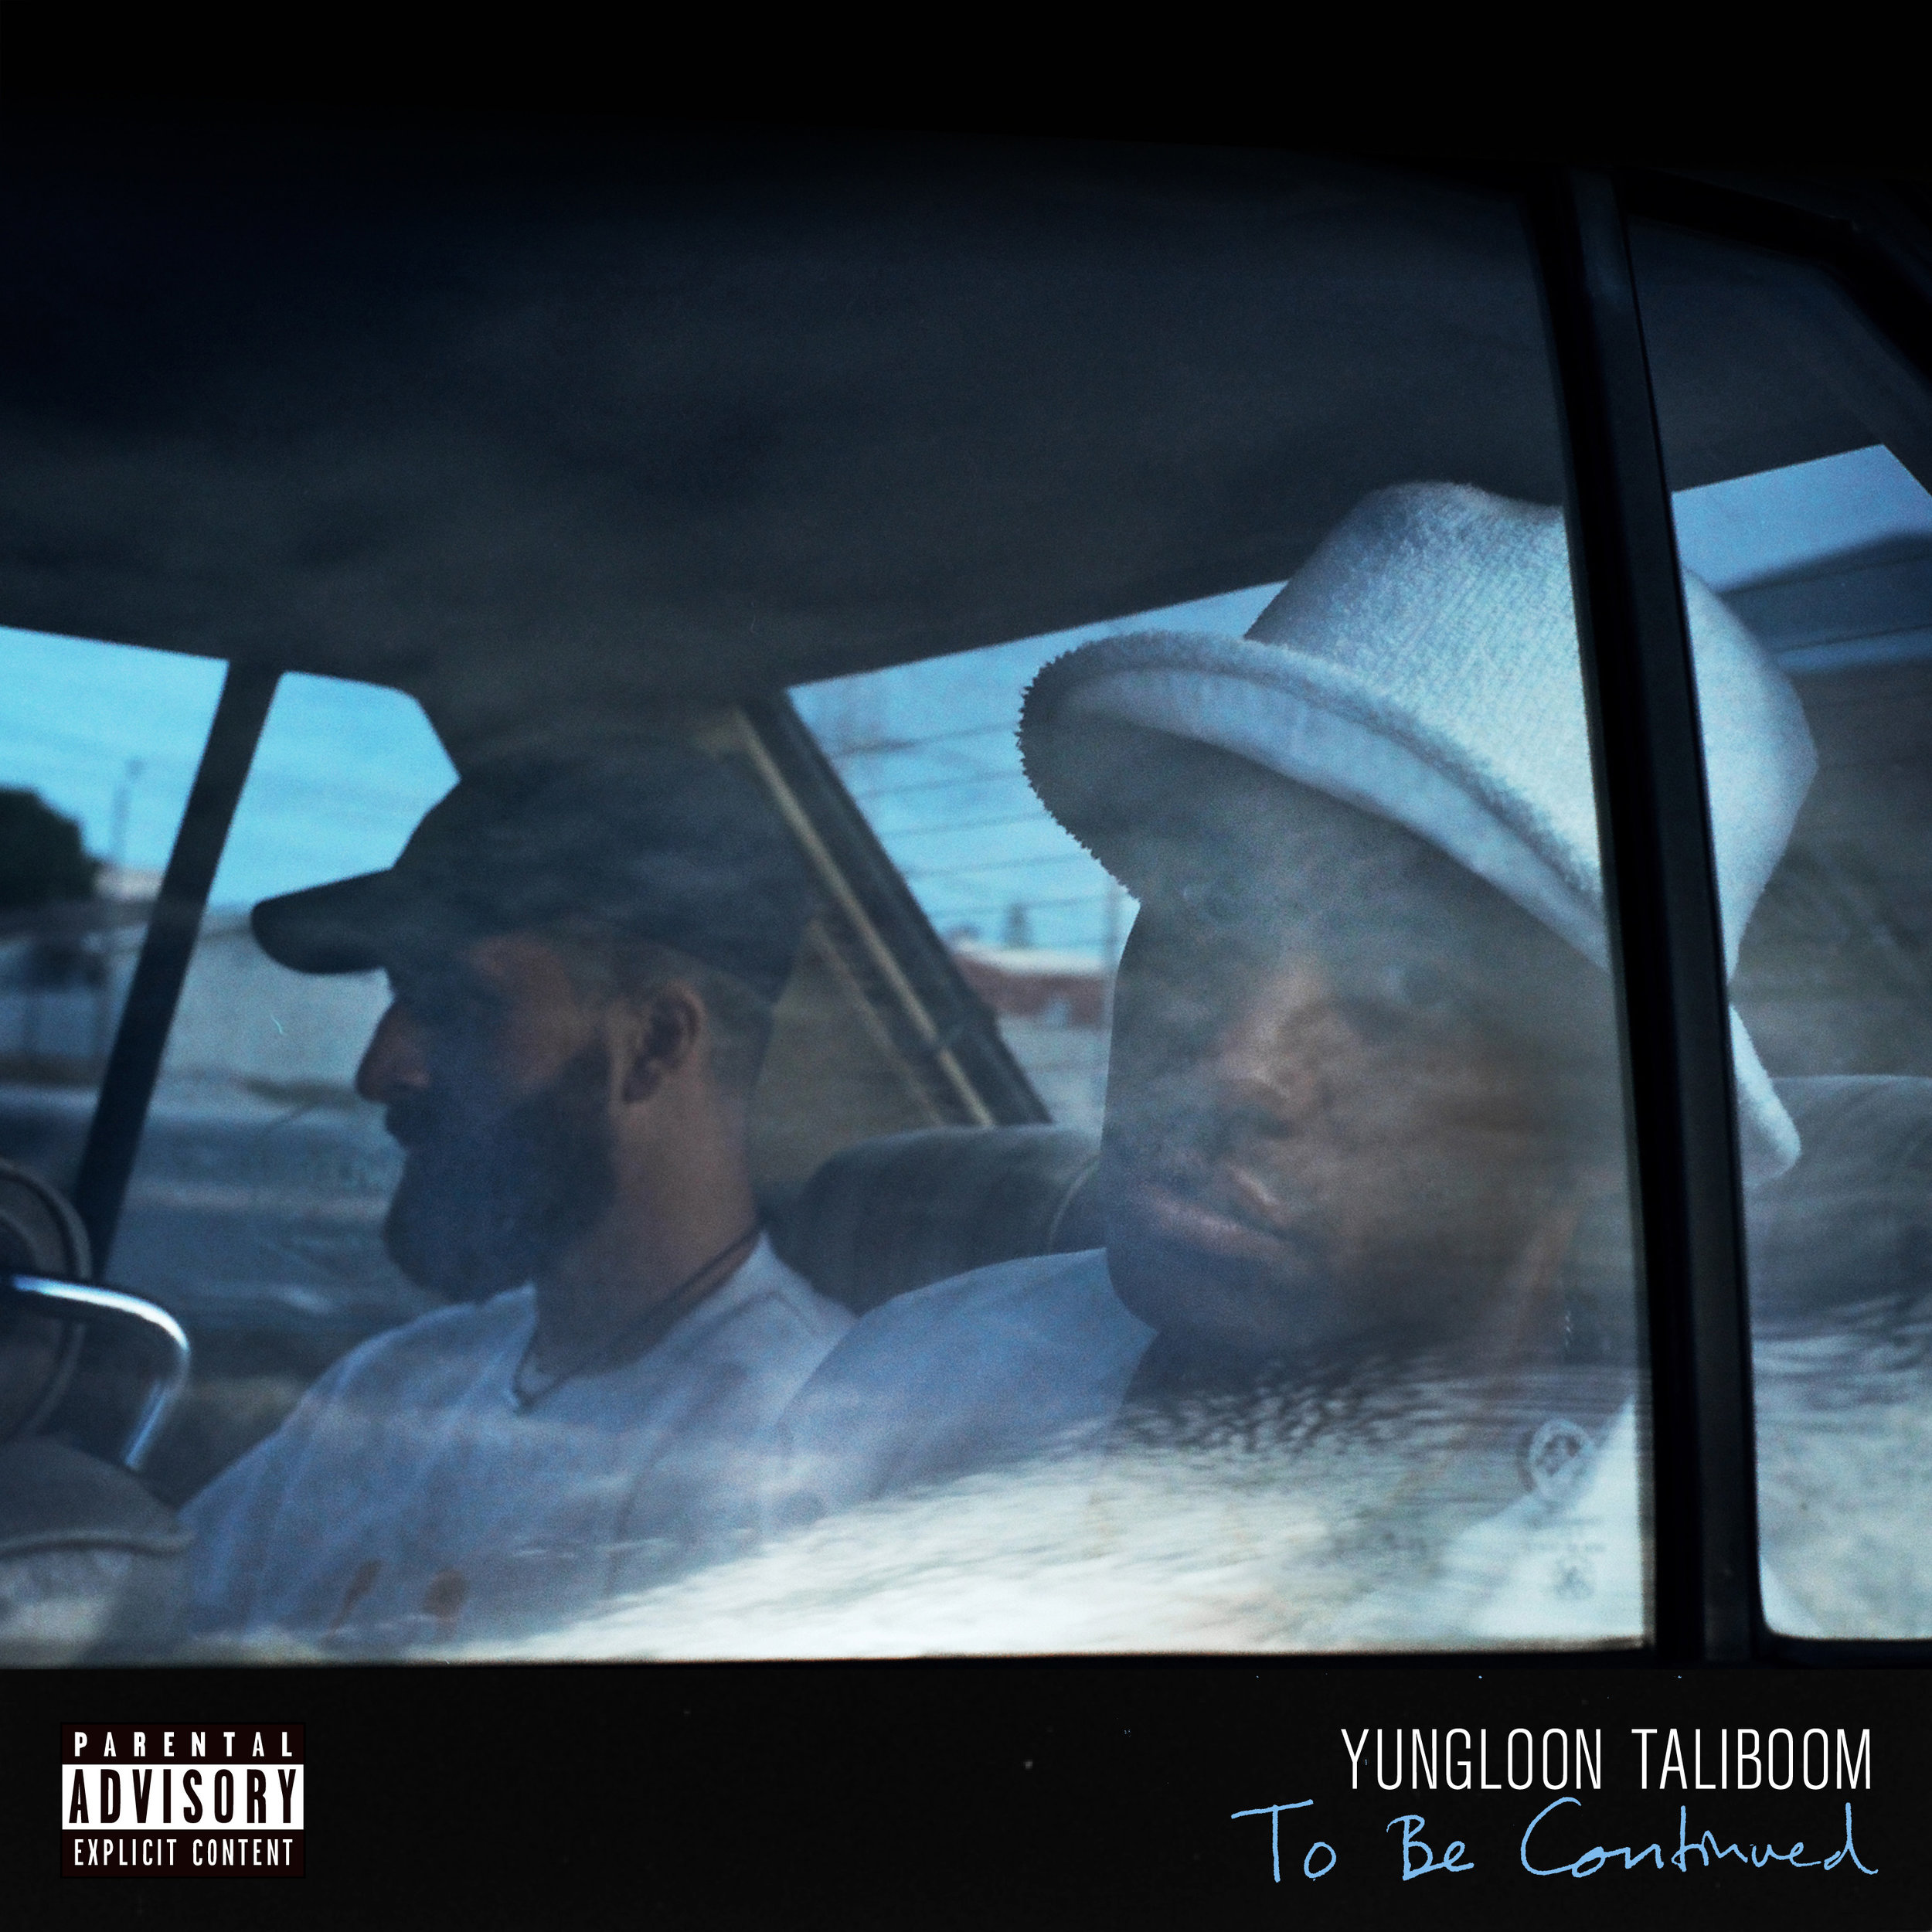 Yungloon Taliboom - To Be Continued